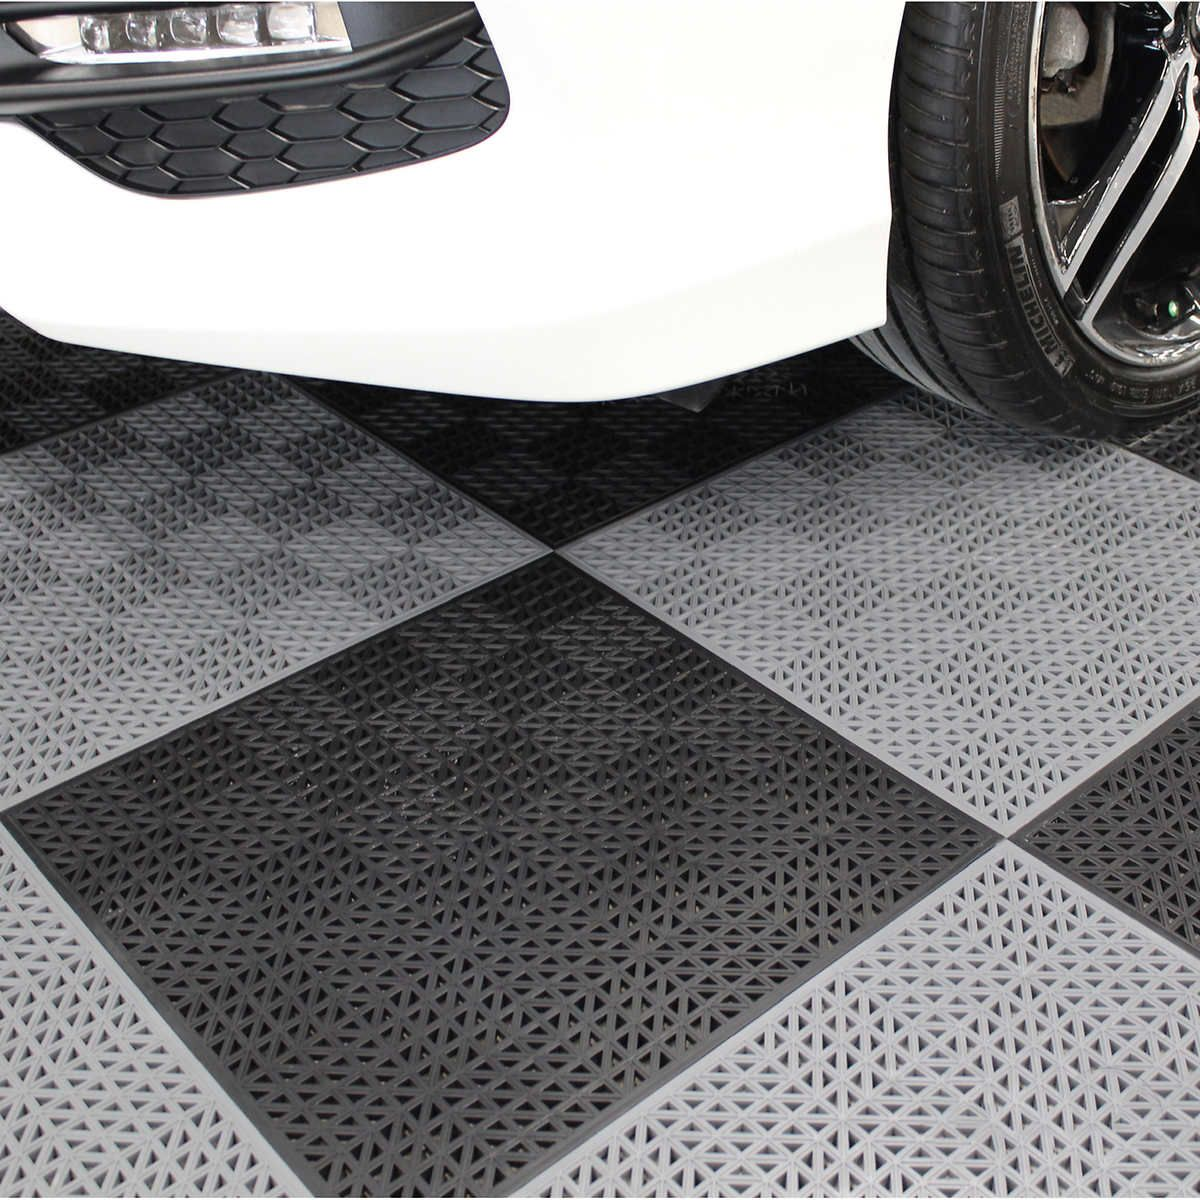 PlastiProLoc Heavy Duty Garage Floor Tiles in 2020